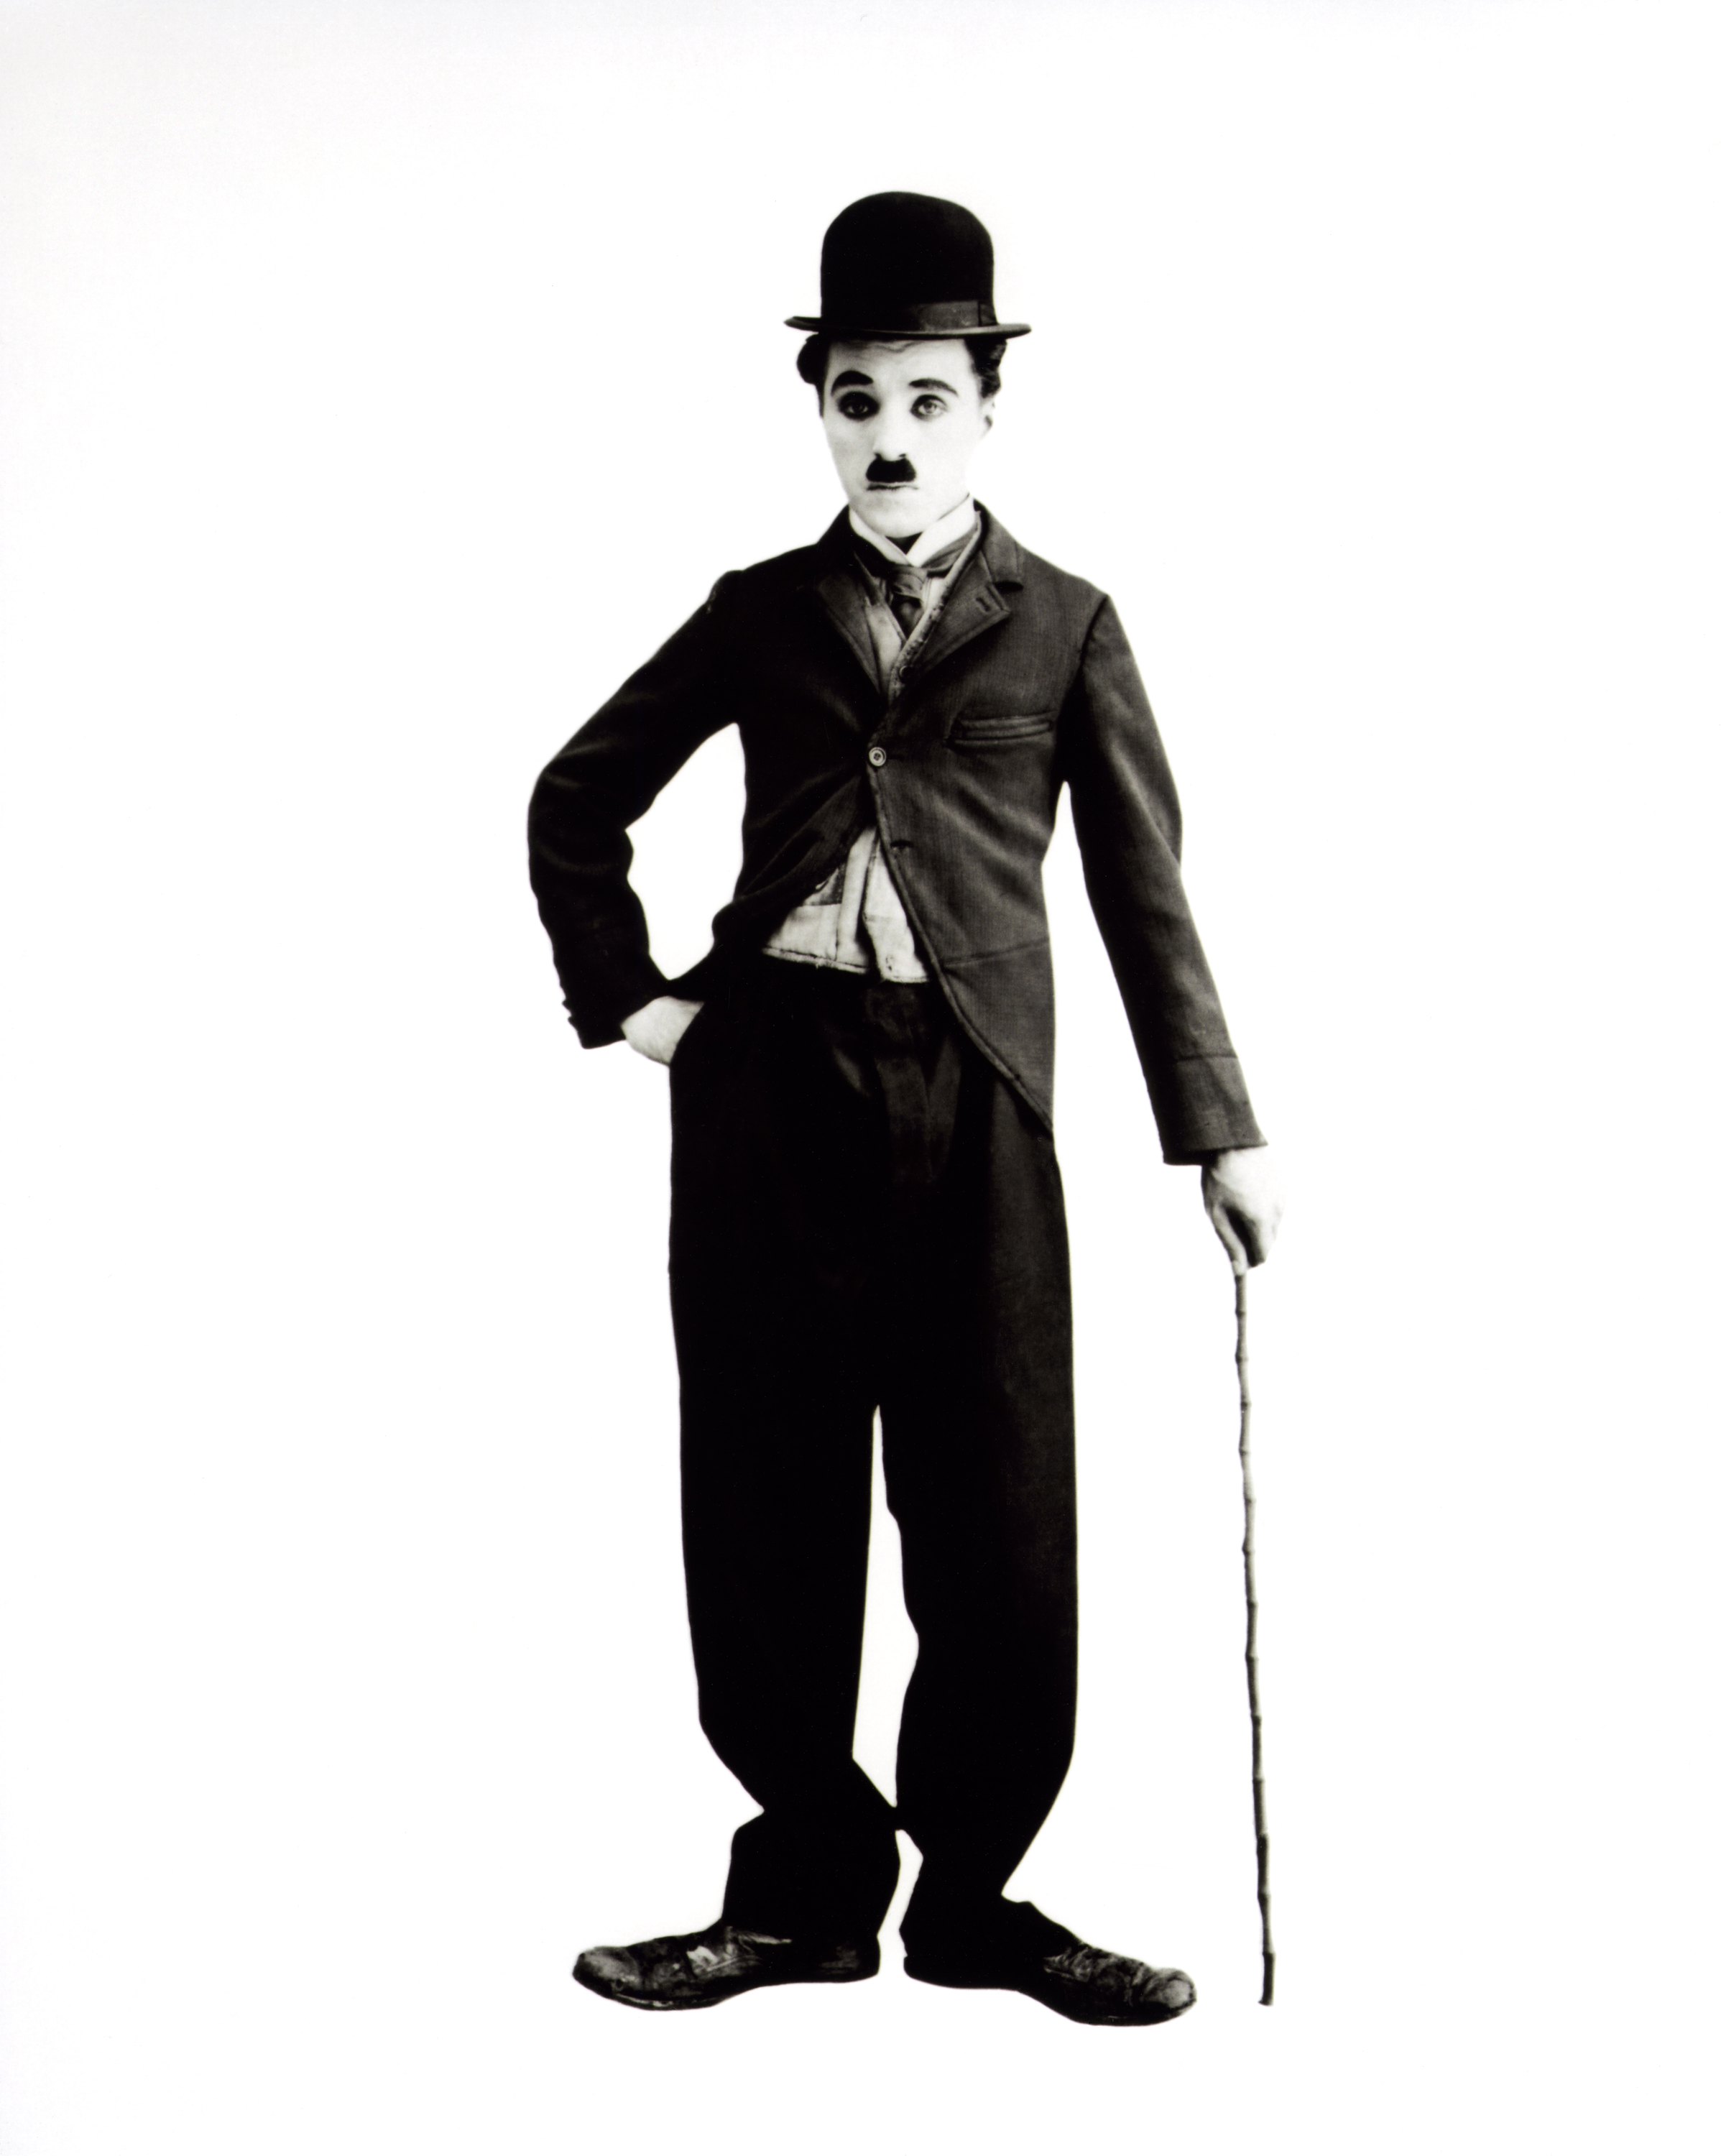 http://www.doctormacro.com/Images/Chaplin,%20Charlie/Chaplin,%20Charlie_01.jpg